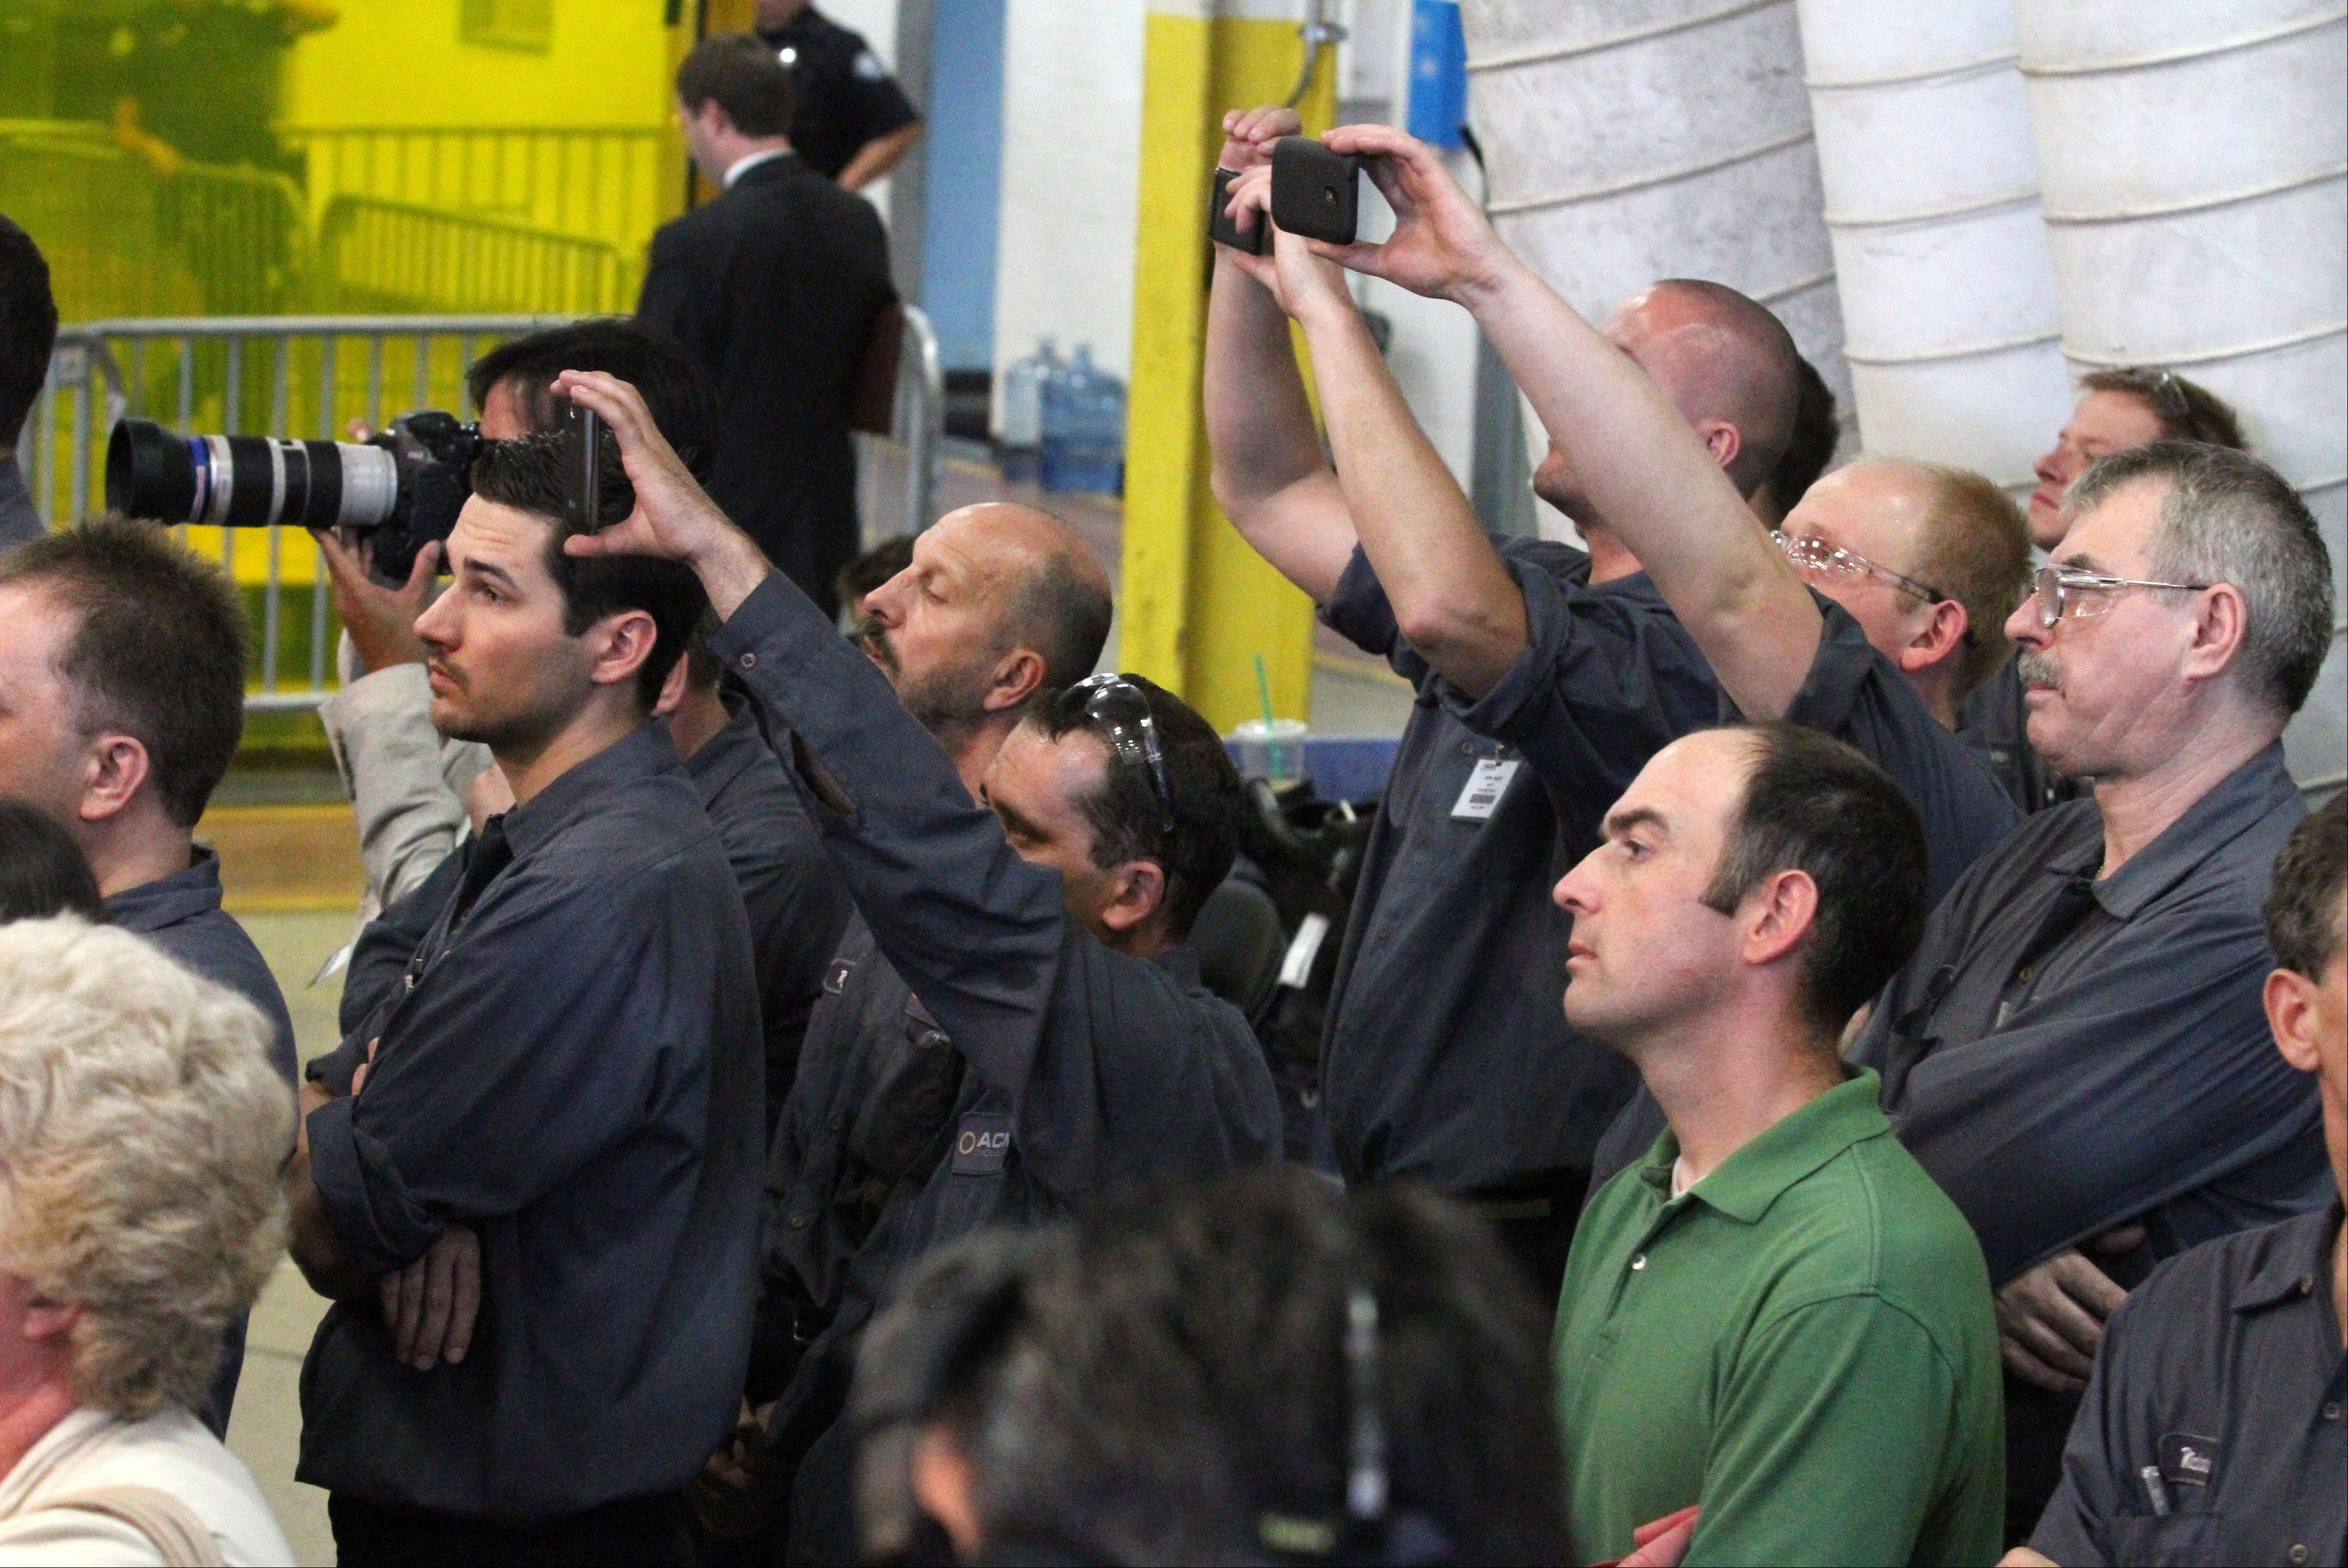 Workers at Acme Industries takes cellphone photographs as GOP Presidential candidate Mitt Romney speaks at the company in Elk Grove Village on Tuesday, August 7.